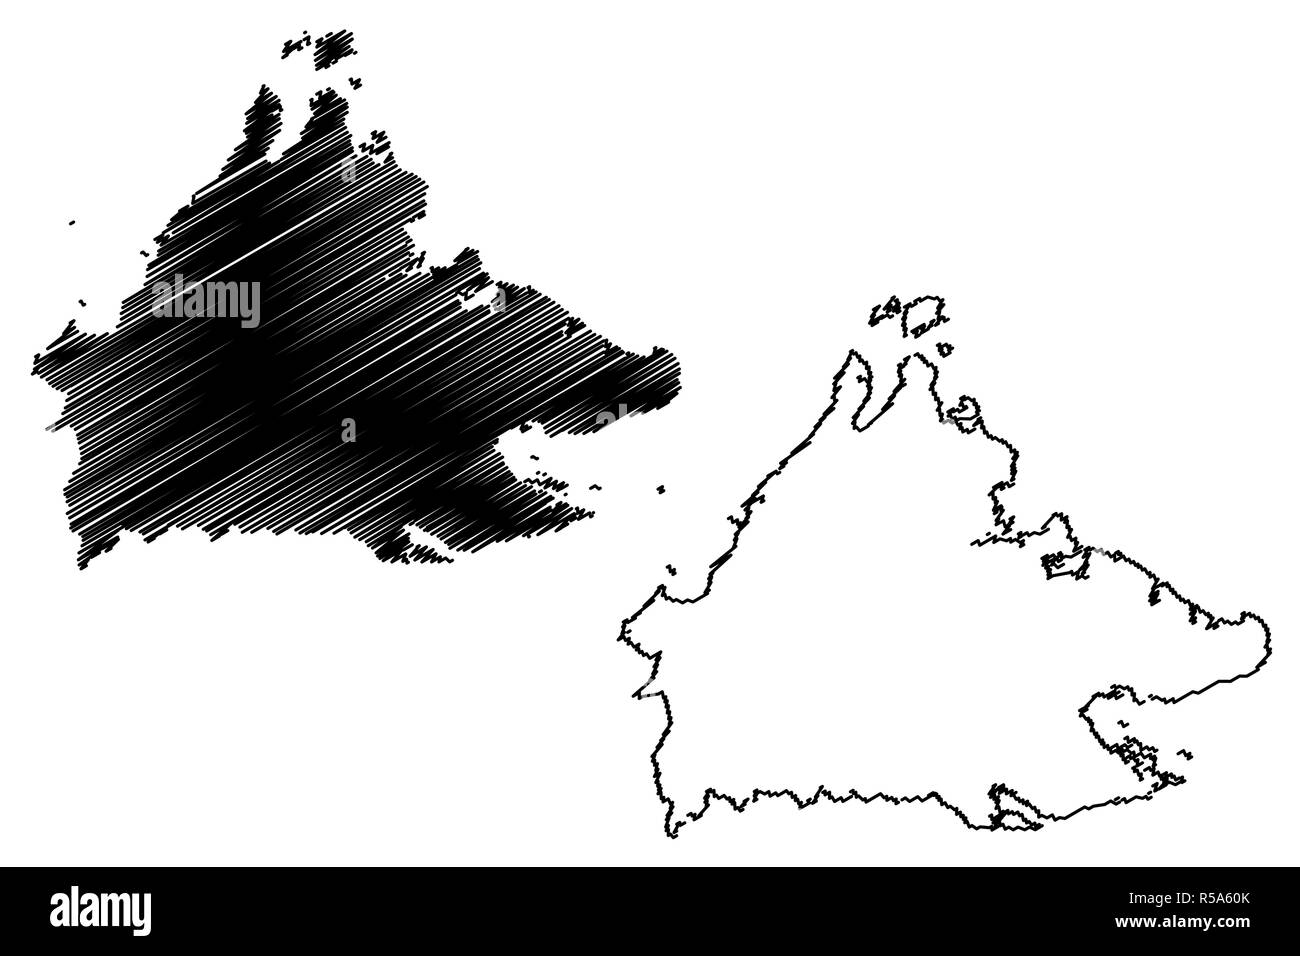 Sabah (States and federal territories of Malaysia, Federation of Malaysia) map vector illustration, scribble sketch Sabah map - Stock Image